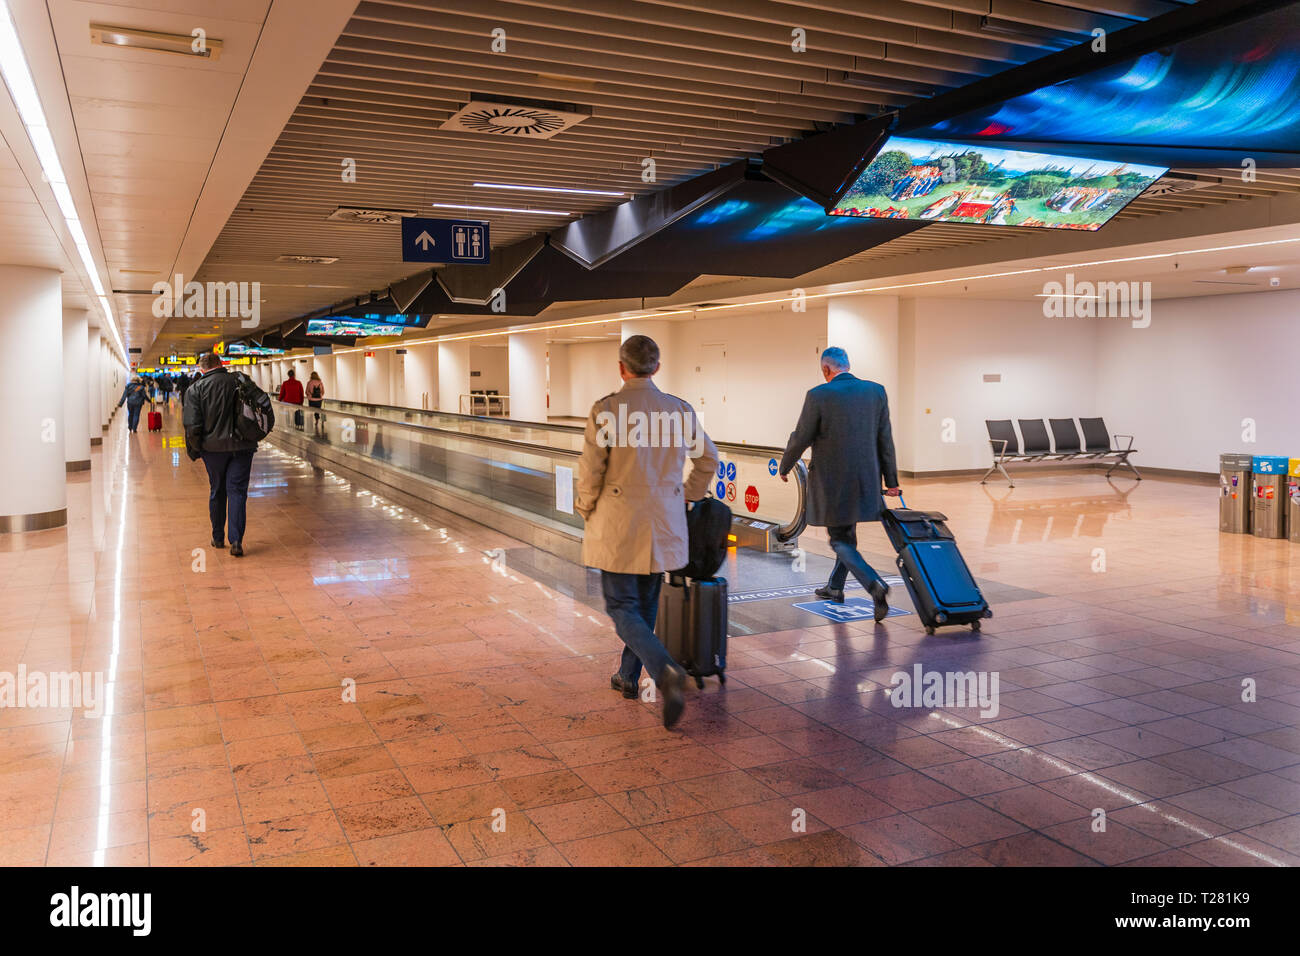 Brussels, Belgium, March 2019 Brussels airport, people are going for customs checks in long corridor with moving walkway, arrival area - Stock Image